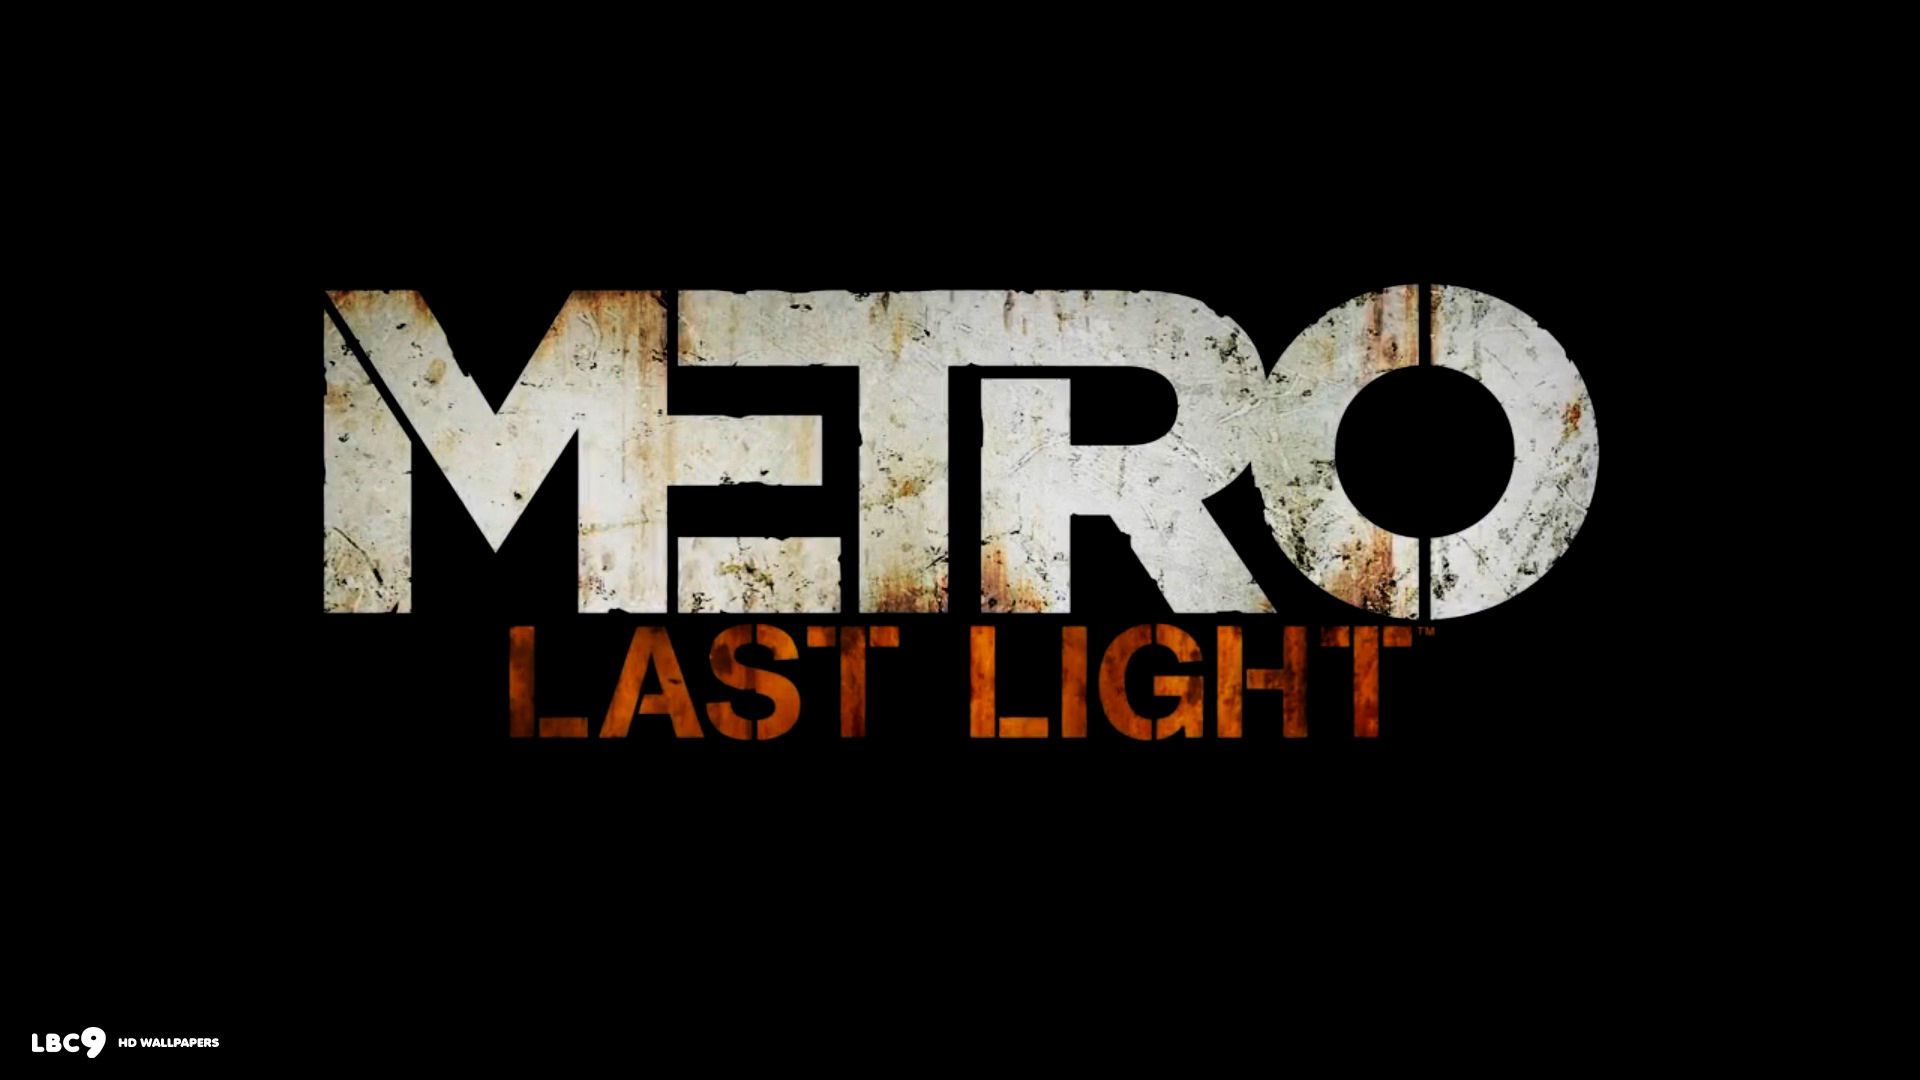 … metro last light wallpaper 10 12 first person shooter games hd …